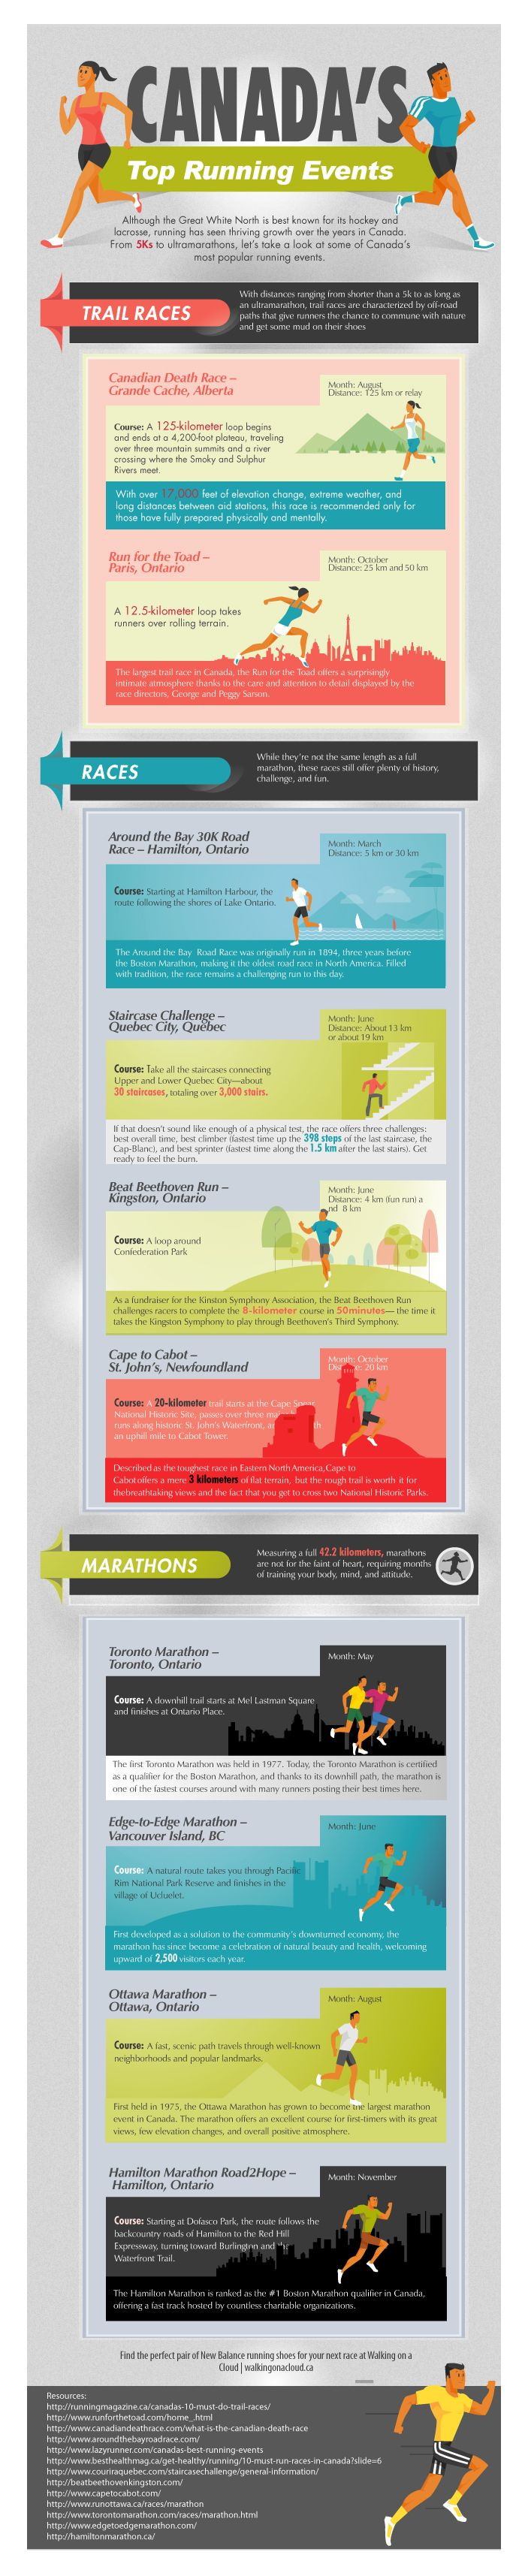 1408_graphic-walking on a cloud-canada running events-compressed